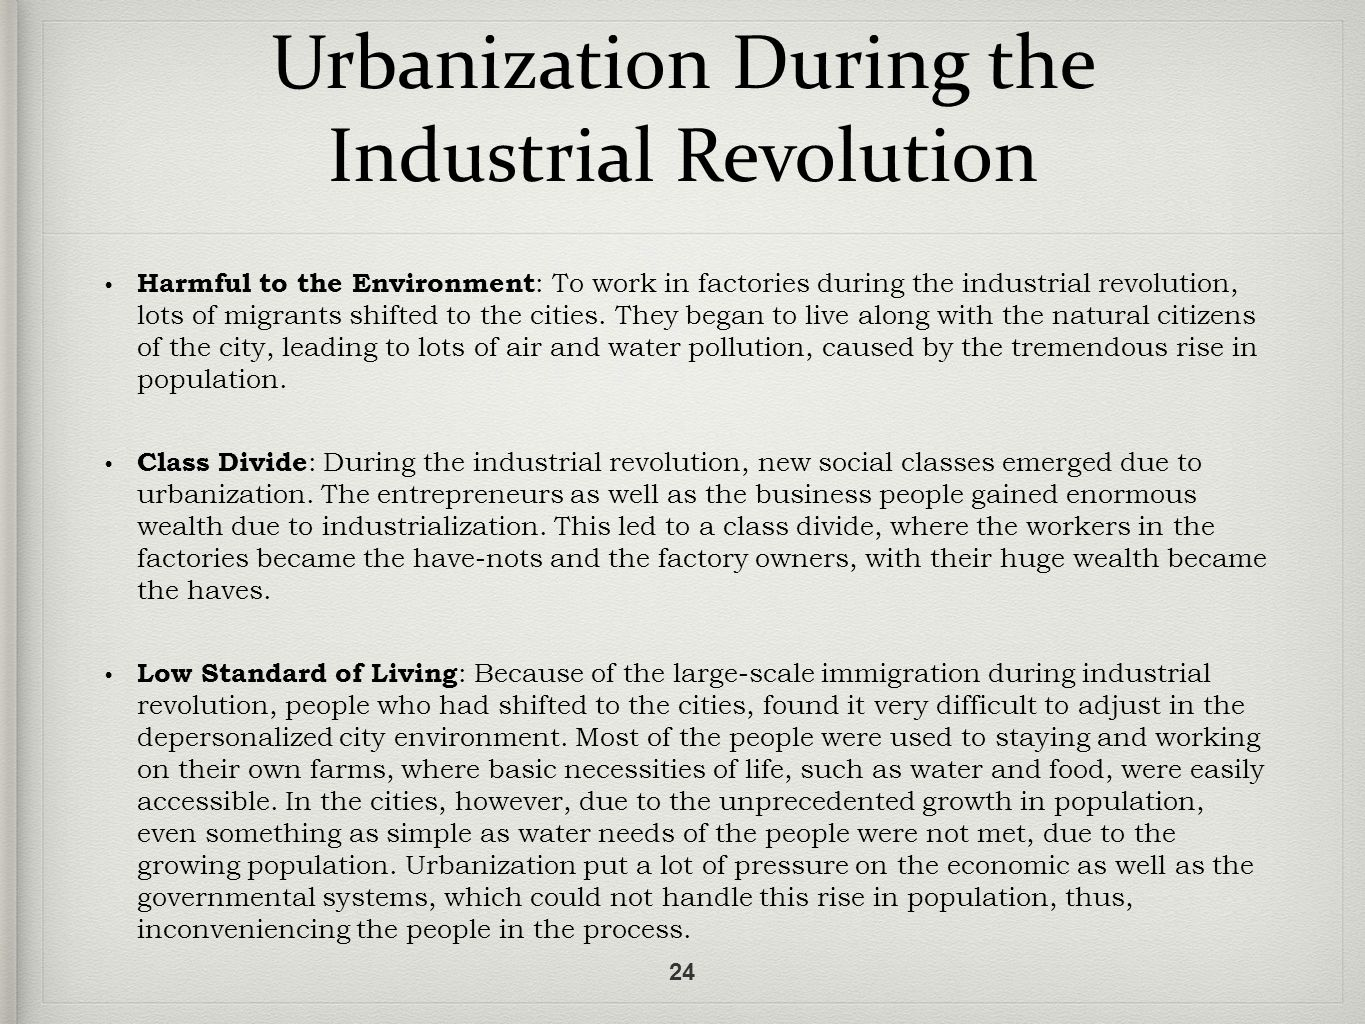 an analysis of the benefits brought by the industrial revolution to society Summarize the changes that the industrial revolution brought to manufacturing wage workers formed their own society in industrial cities and mill villages.